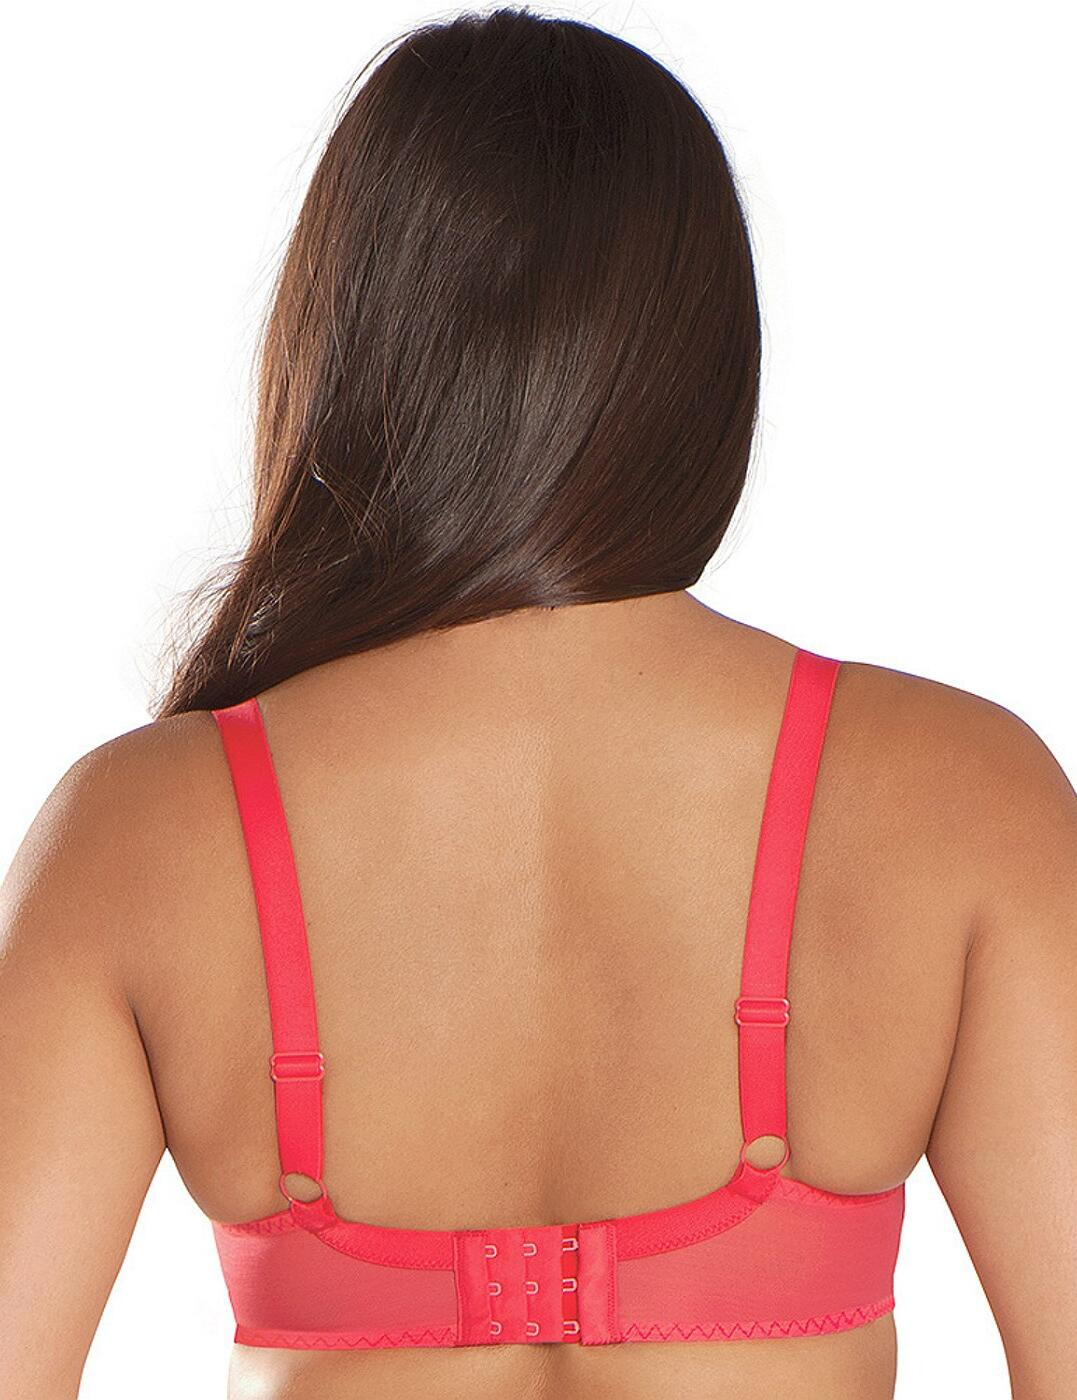 Curvy-Kate-Lifestyle-Underwired-Non-Padded-Plunge-Bra-CK5711 thumbnail 6